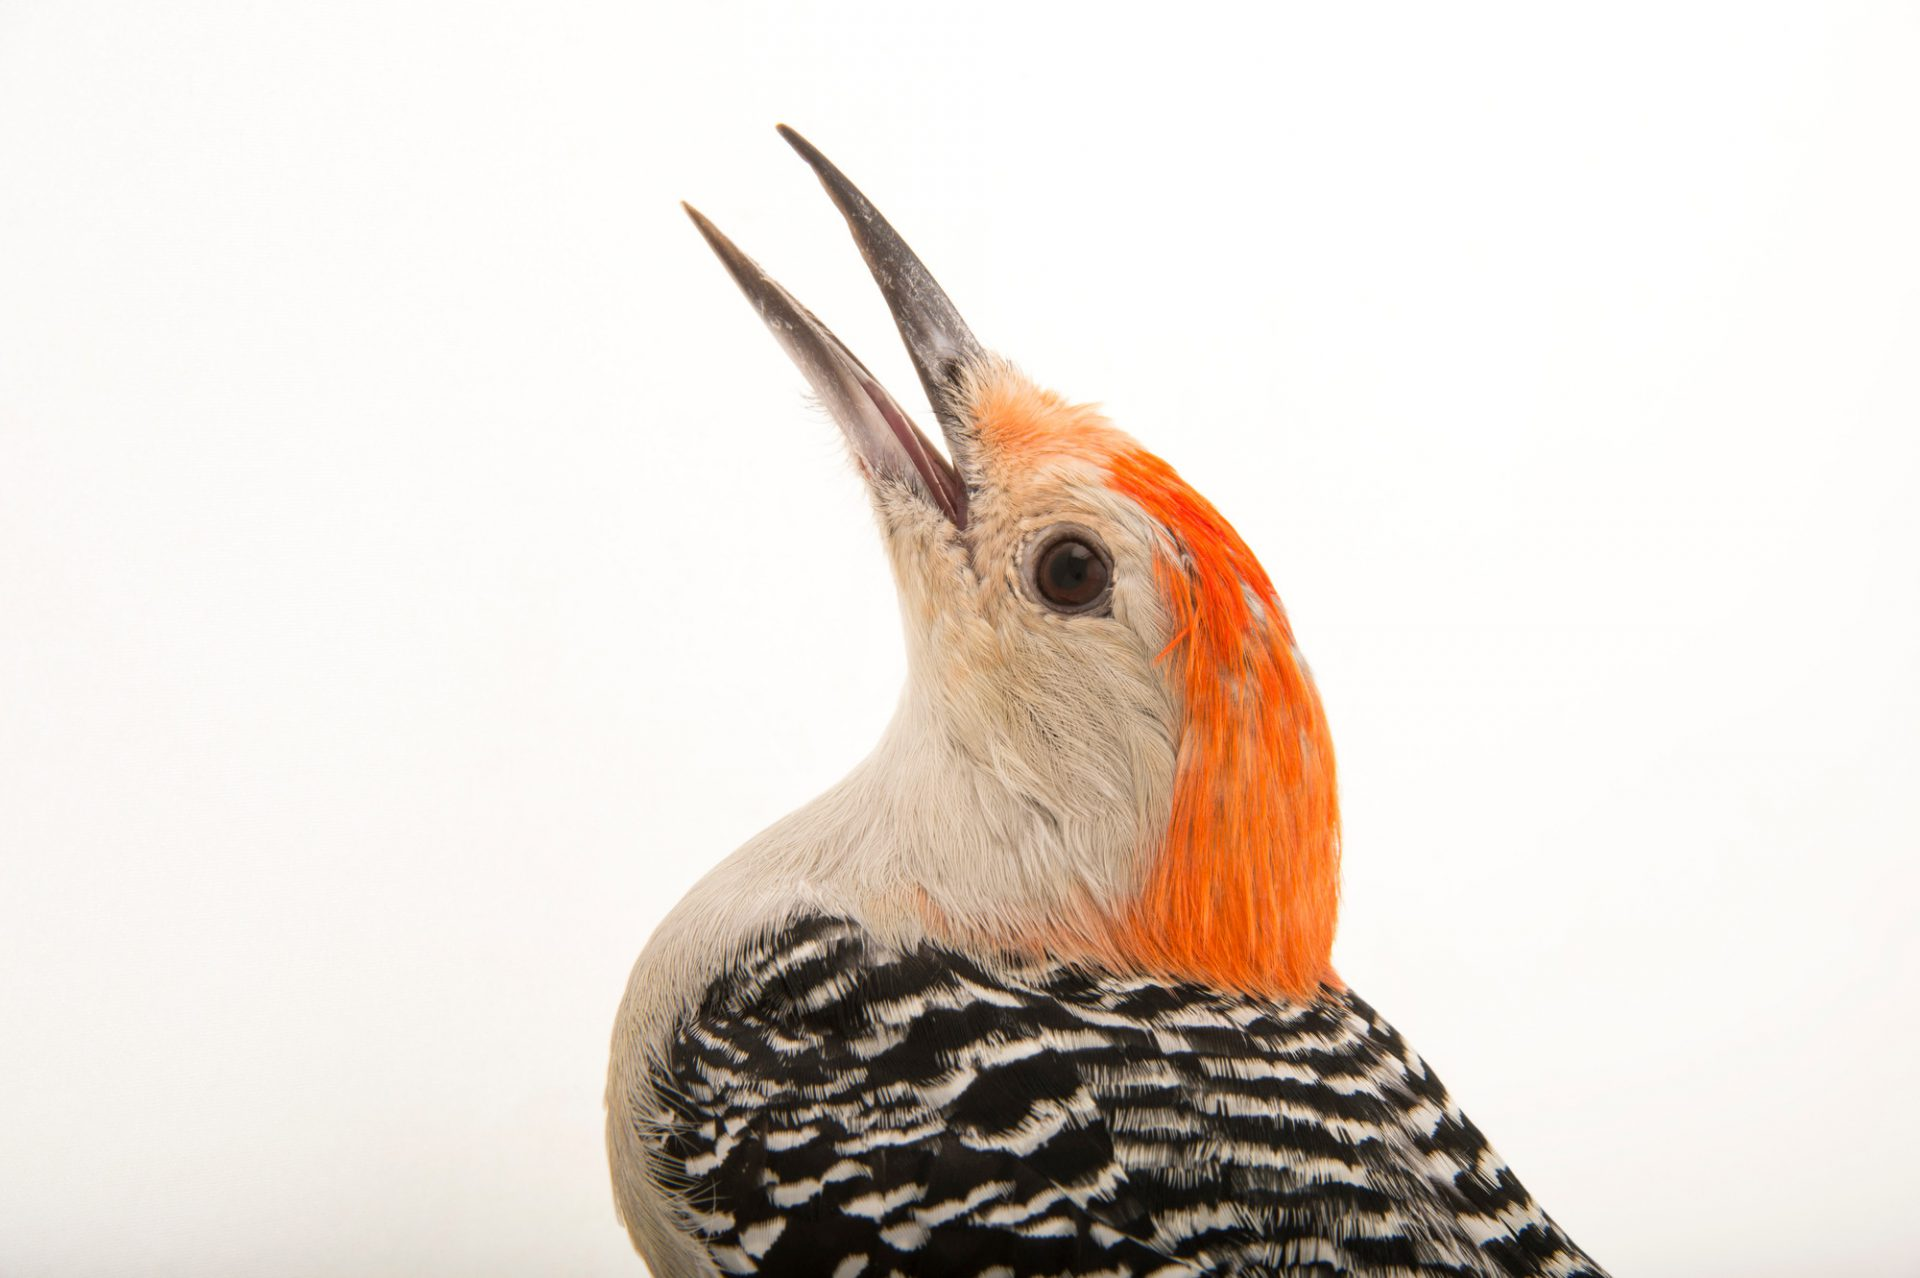 Picture of a red-bellied woodpecker (Melanerpes carolinus) named Birch, at the Boonshoft Museum of Discovery in Dayton, Ohio.